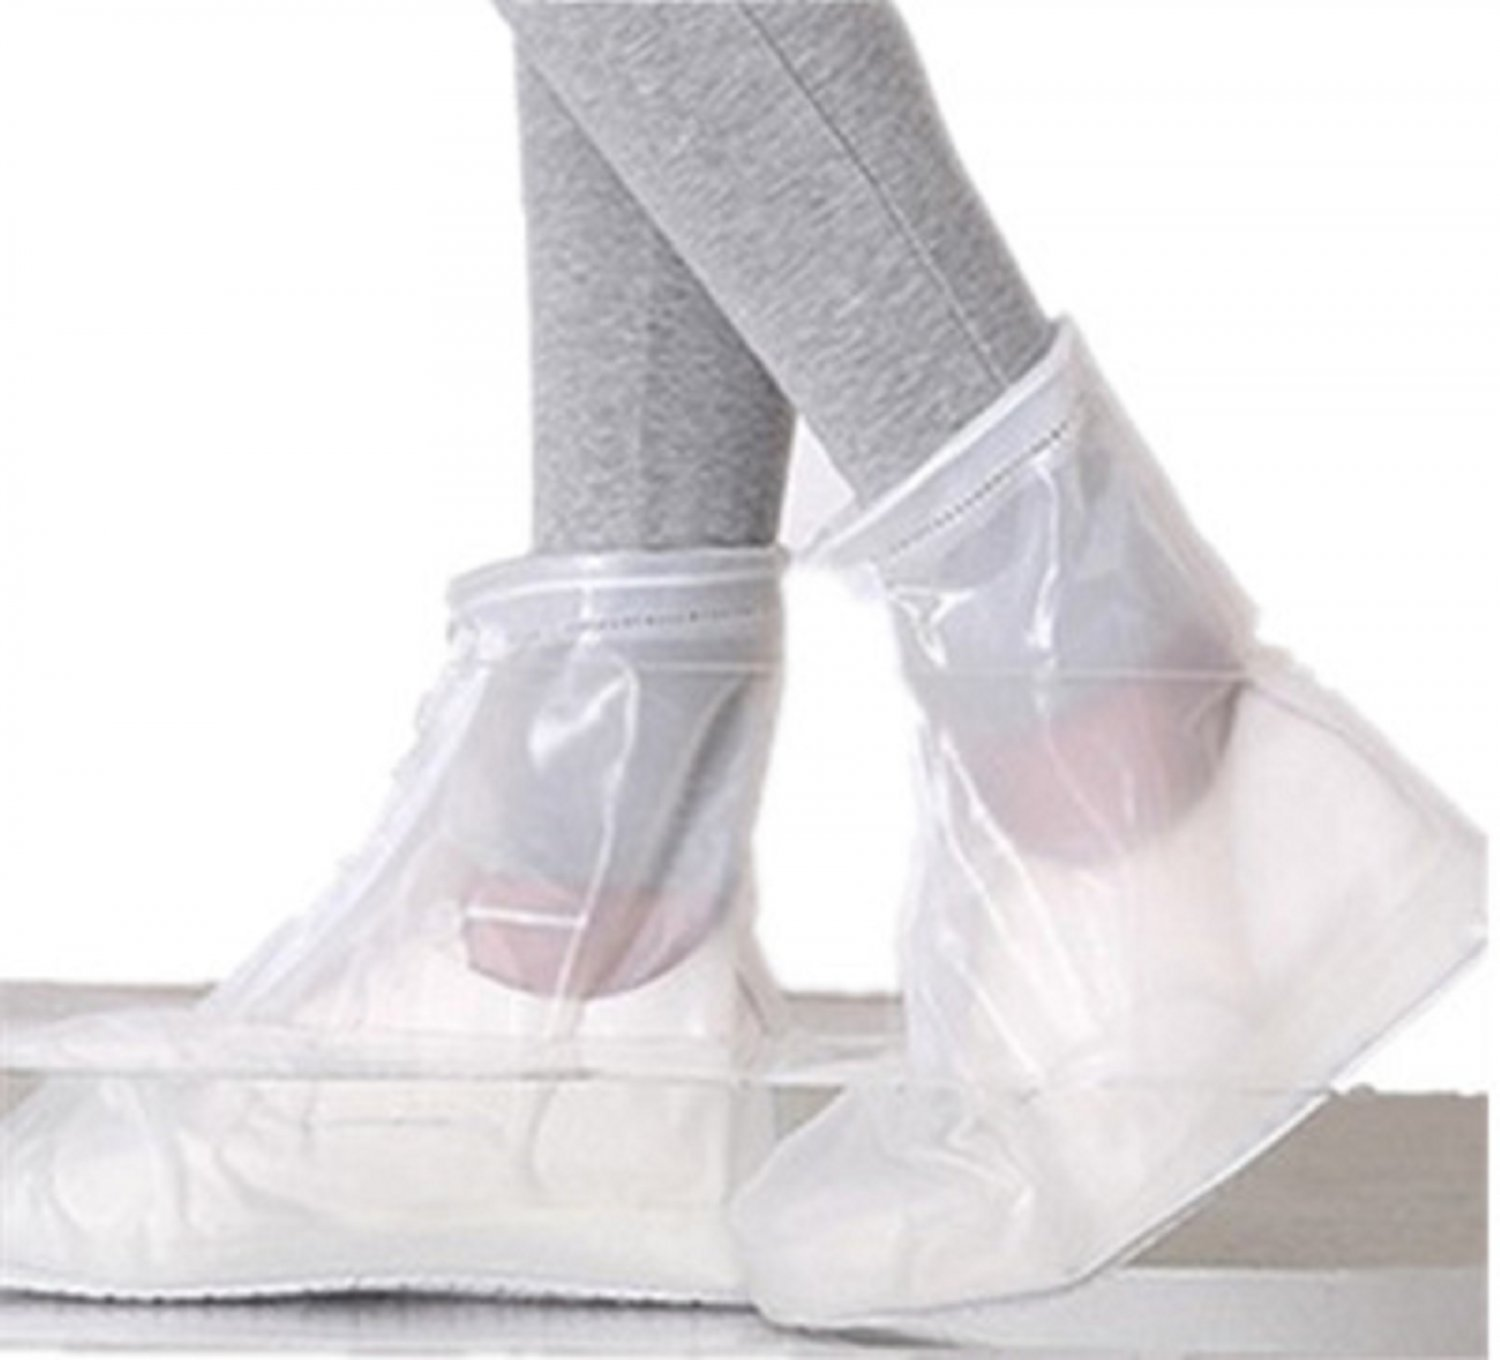 Newest Seamless Unisex Reusable Cycling Rain/Dust/Snow/Waterproof Shoe Covers